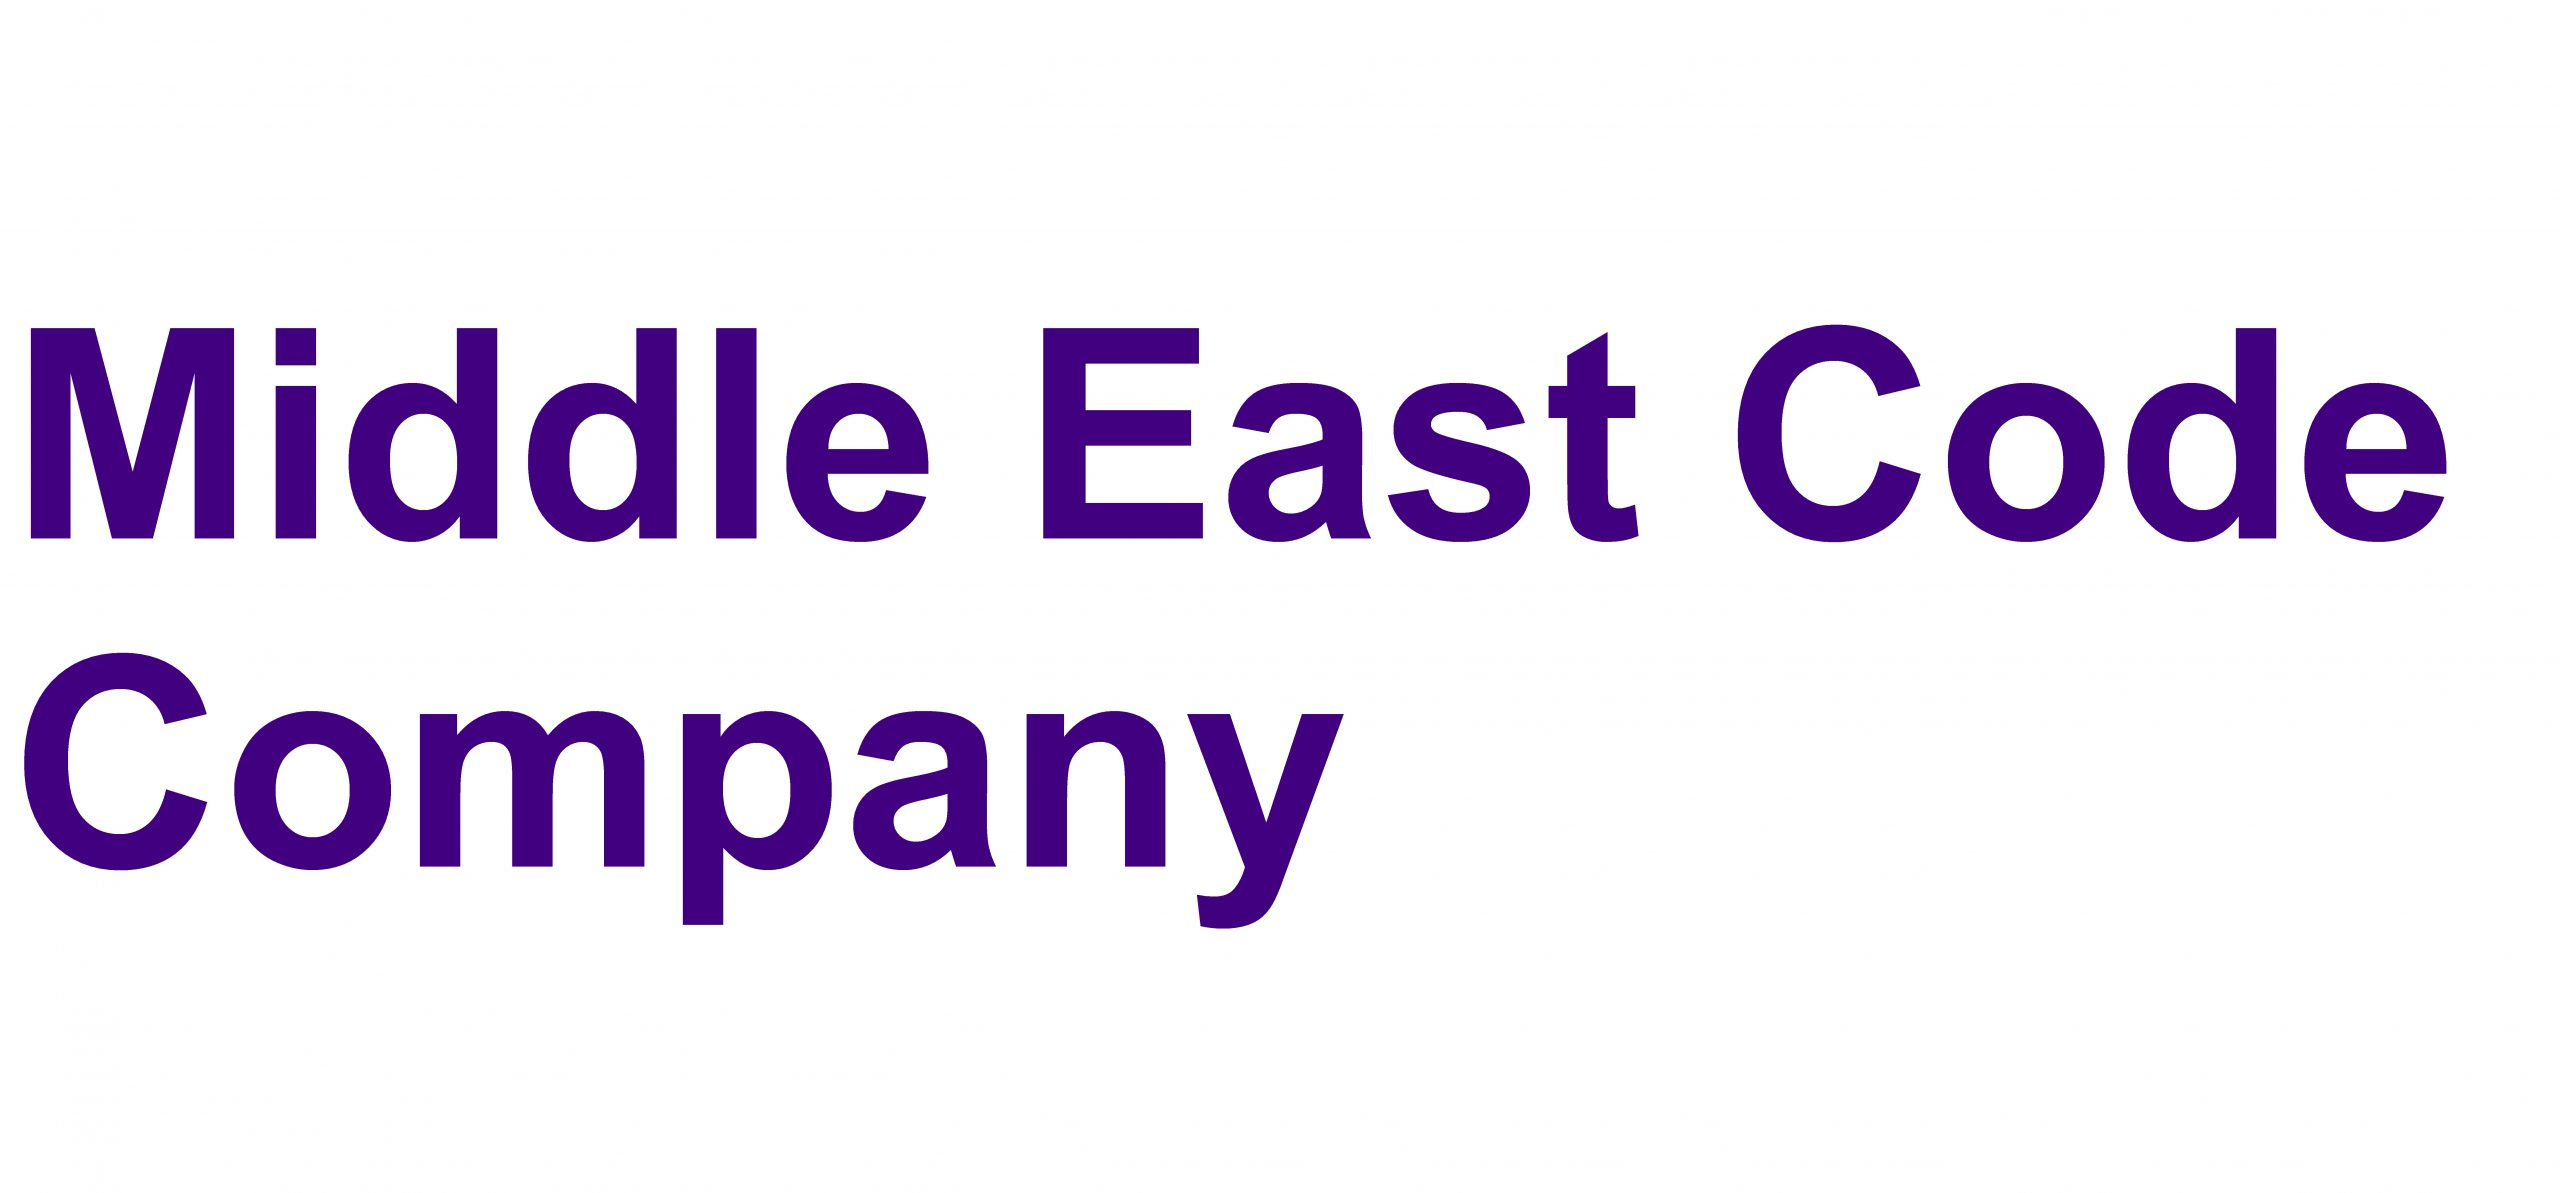 Middle East Code Company